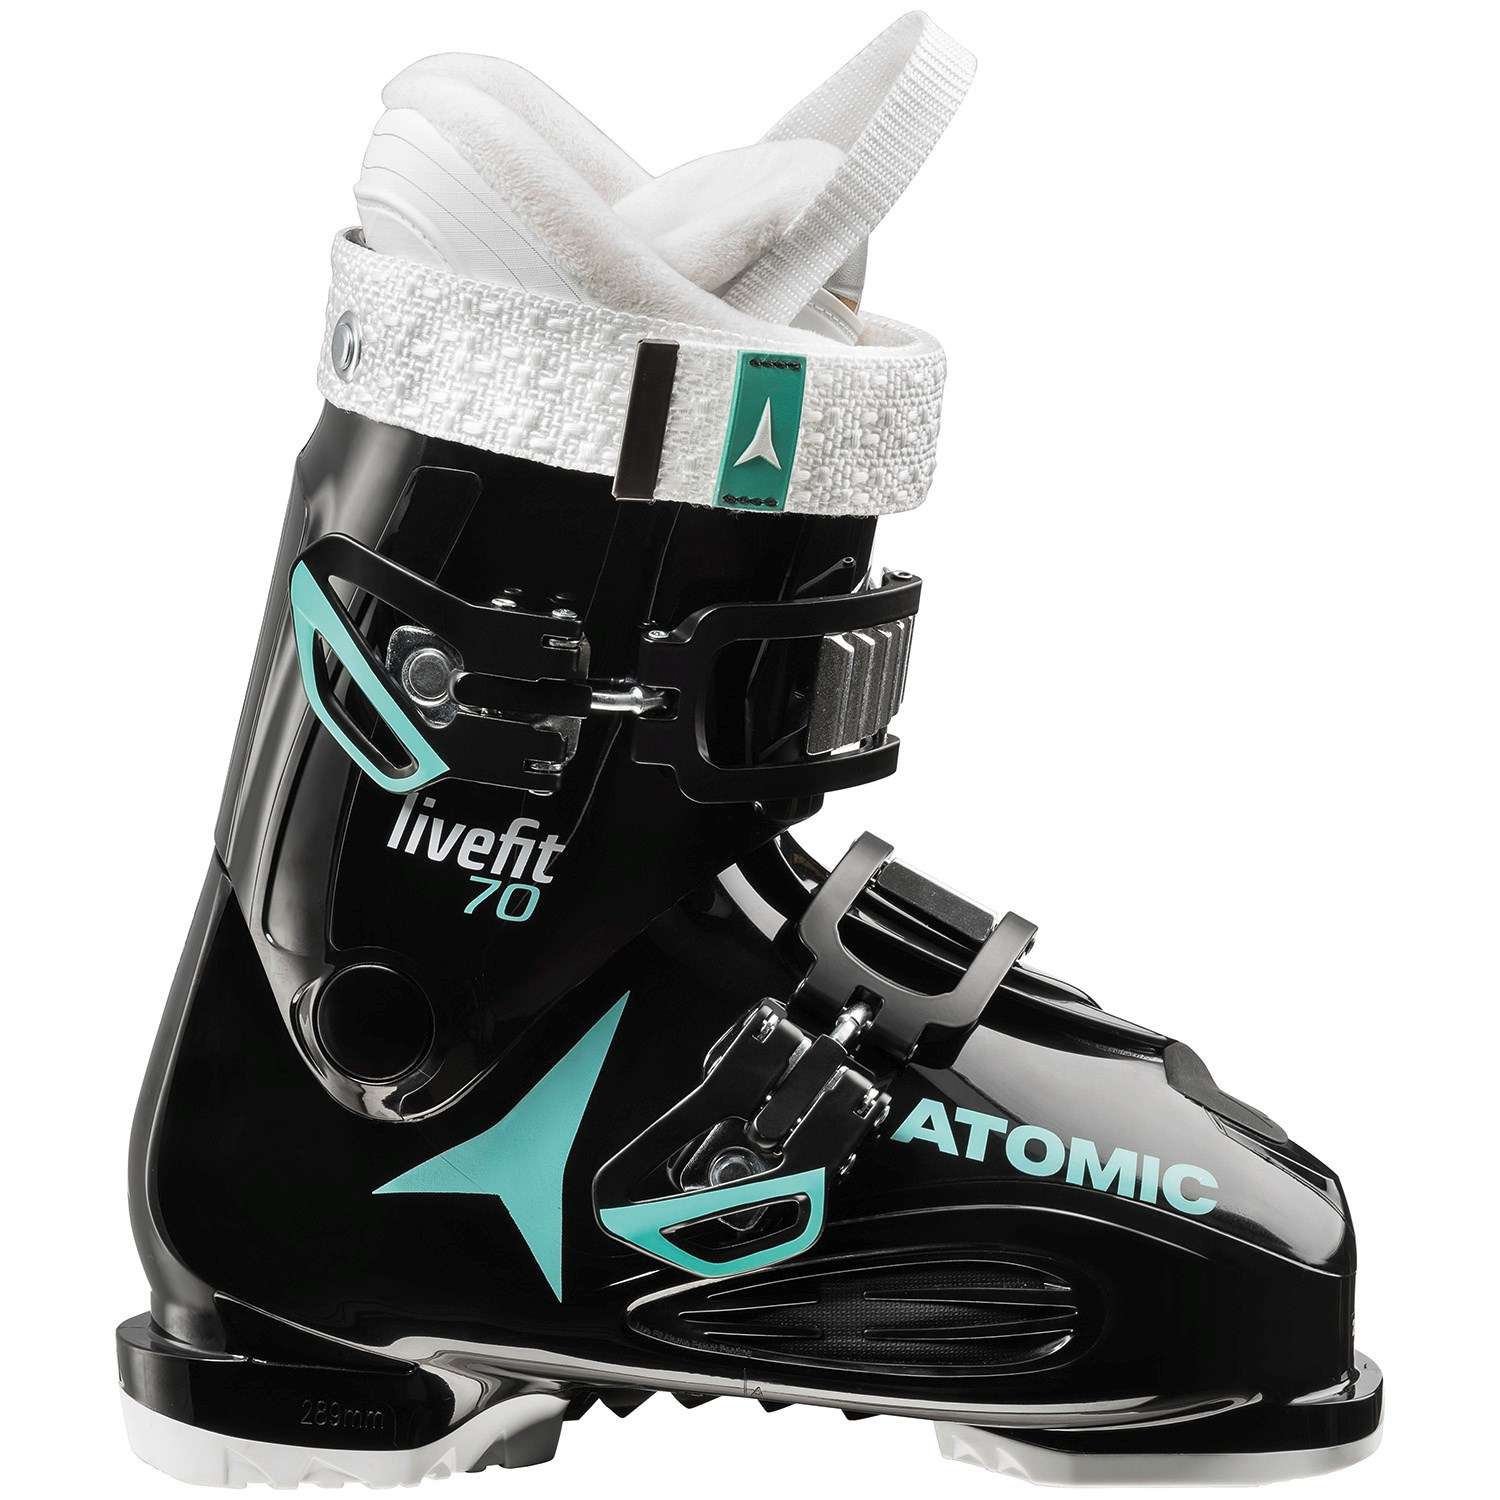 Atomic Live Fit 70 W Ski Boots - Women's 2018 $249.95